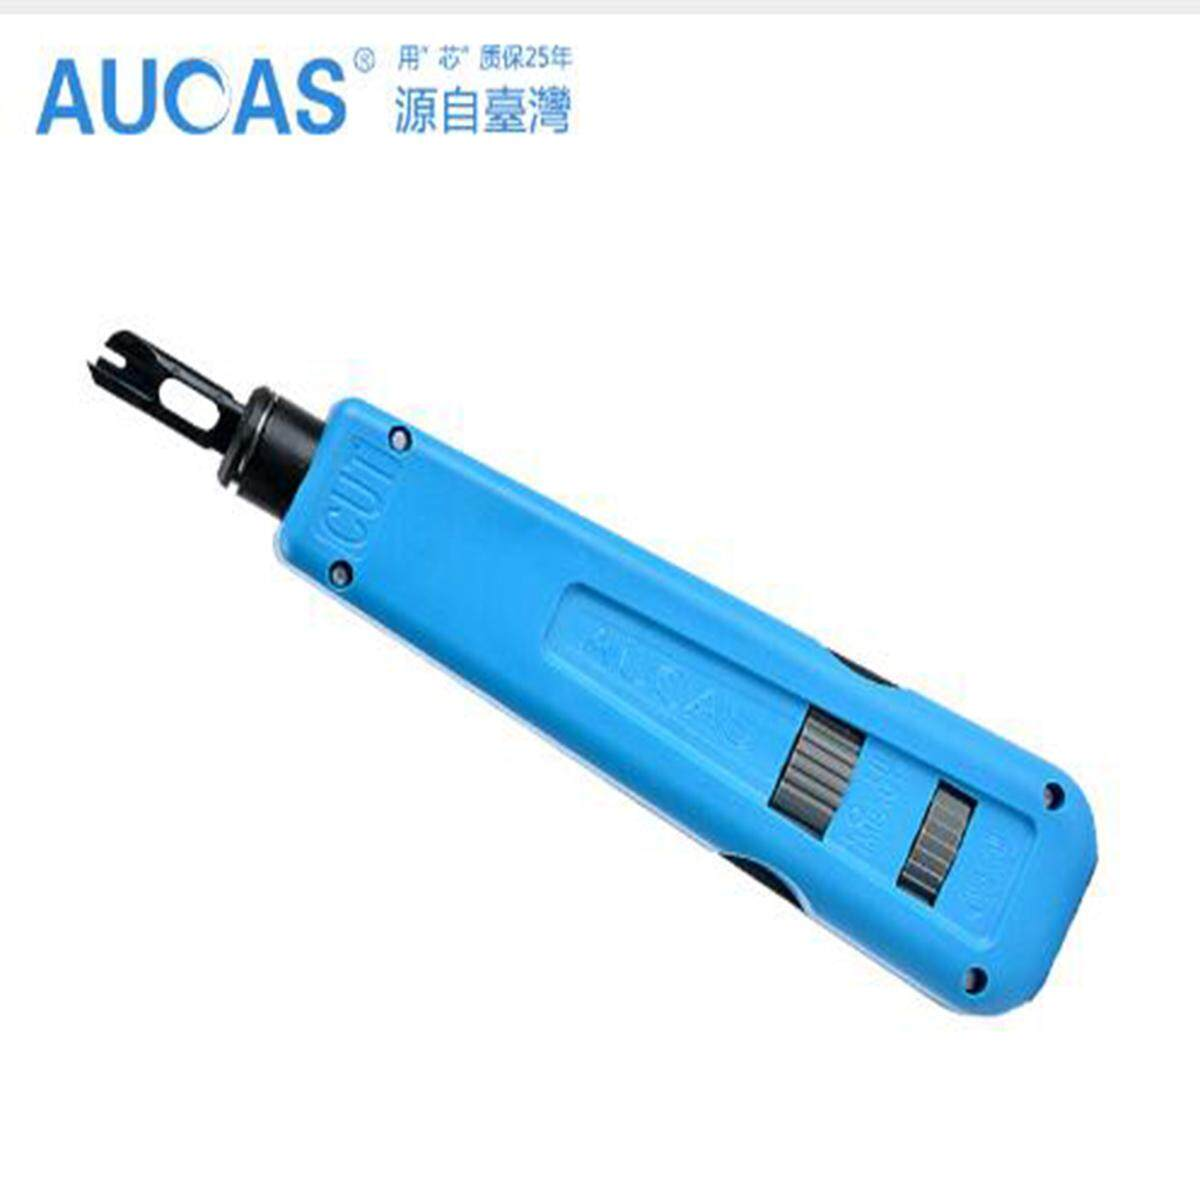 Aucas Network Cable Impact Krone Tool Module Block Insertion Punch Down Tool